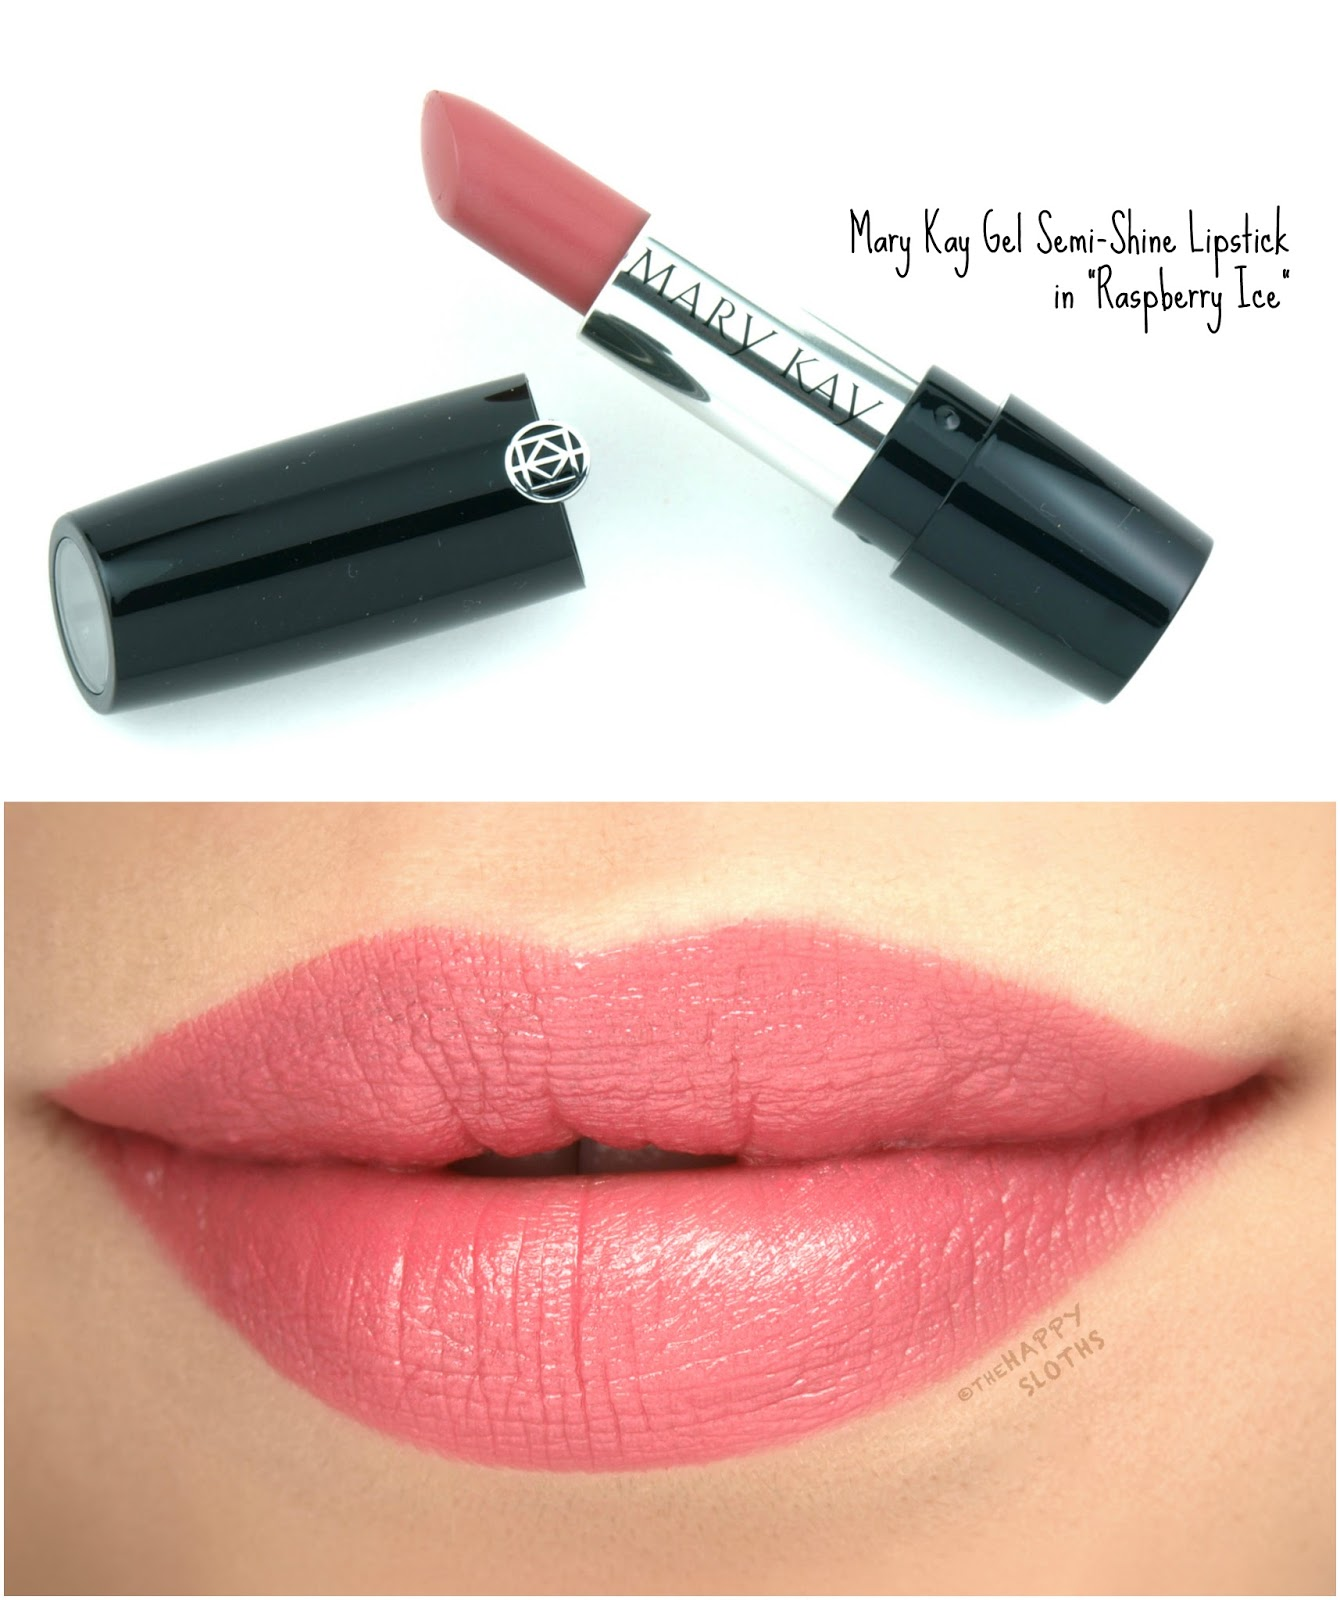 "Mary Kay Gel Semi-Shine Lipstick in ""Raspberry Ice"": Review and Swatches"